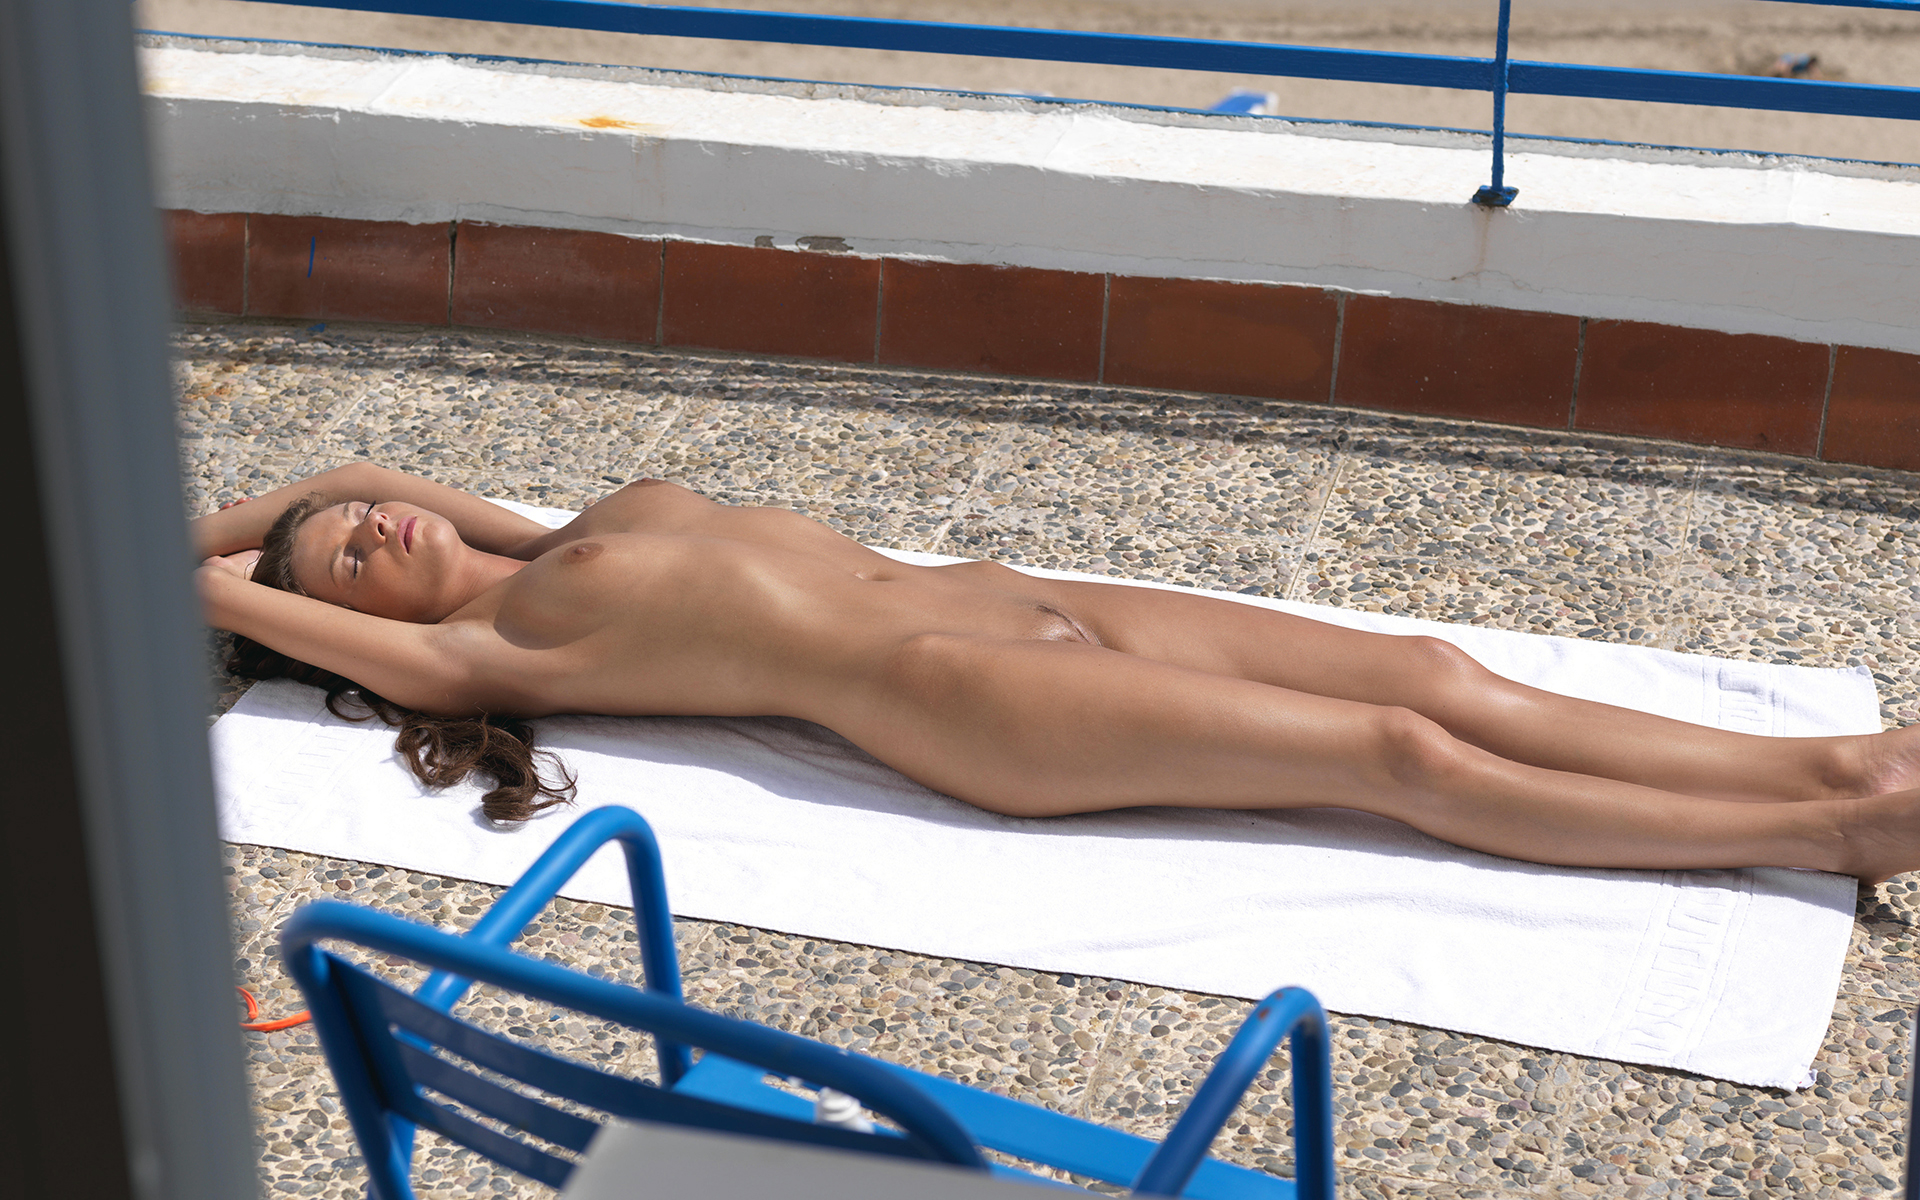 Stasha nudist beach consider